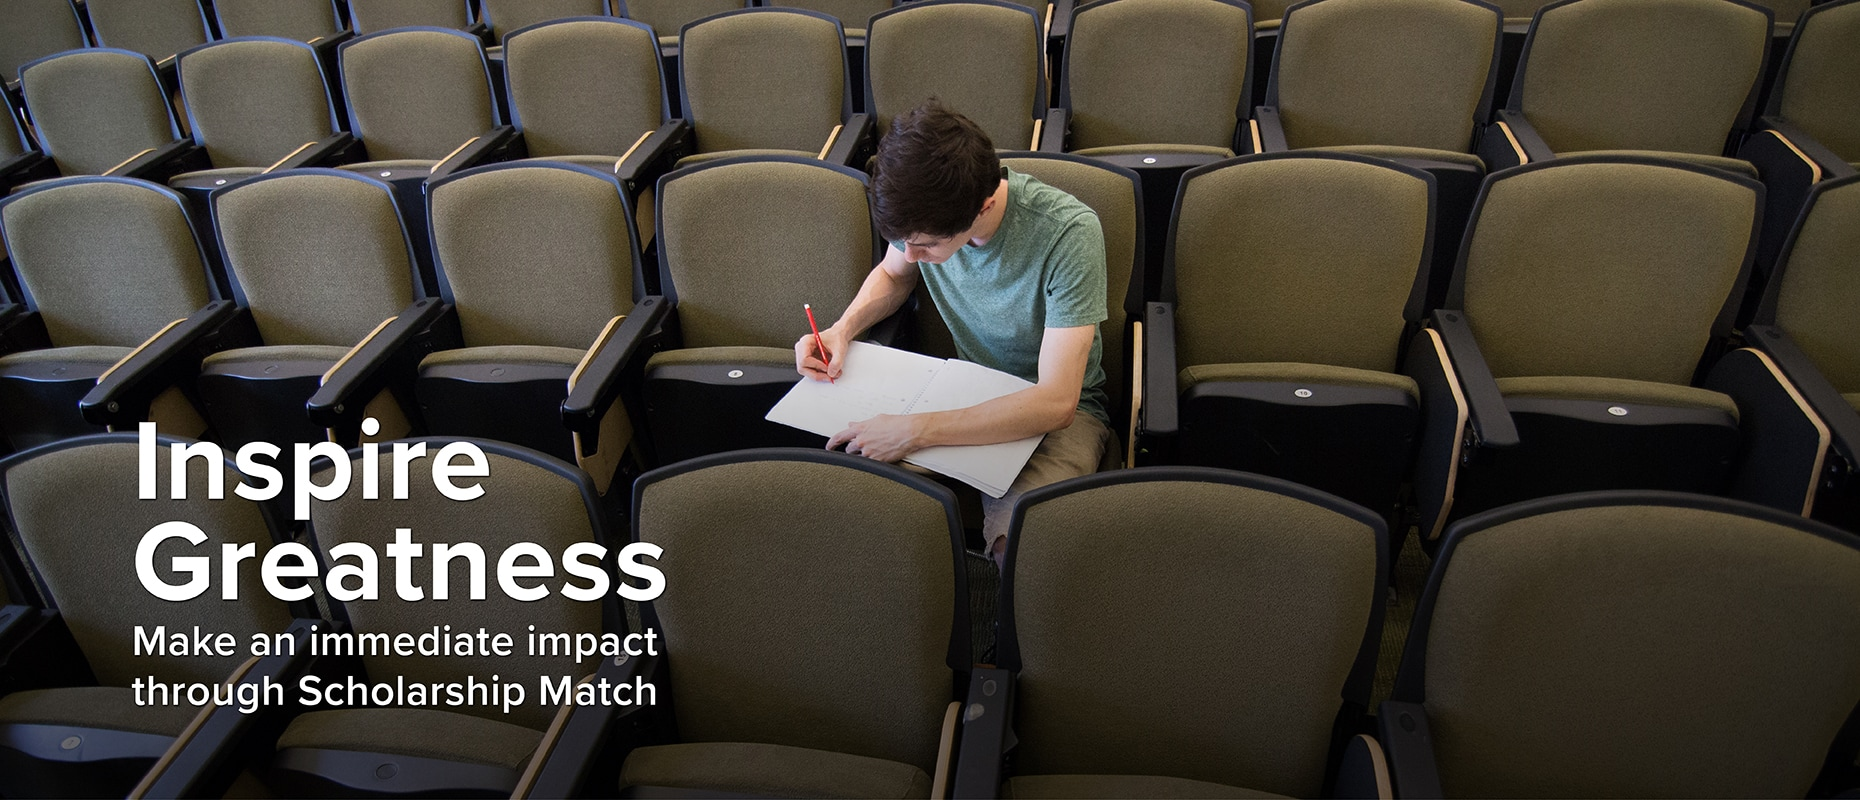 Inspire Greatness. Make an immediate impact through Scholarship Match